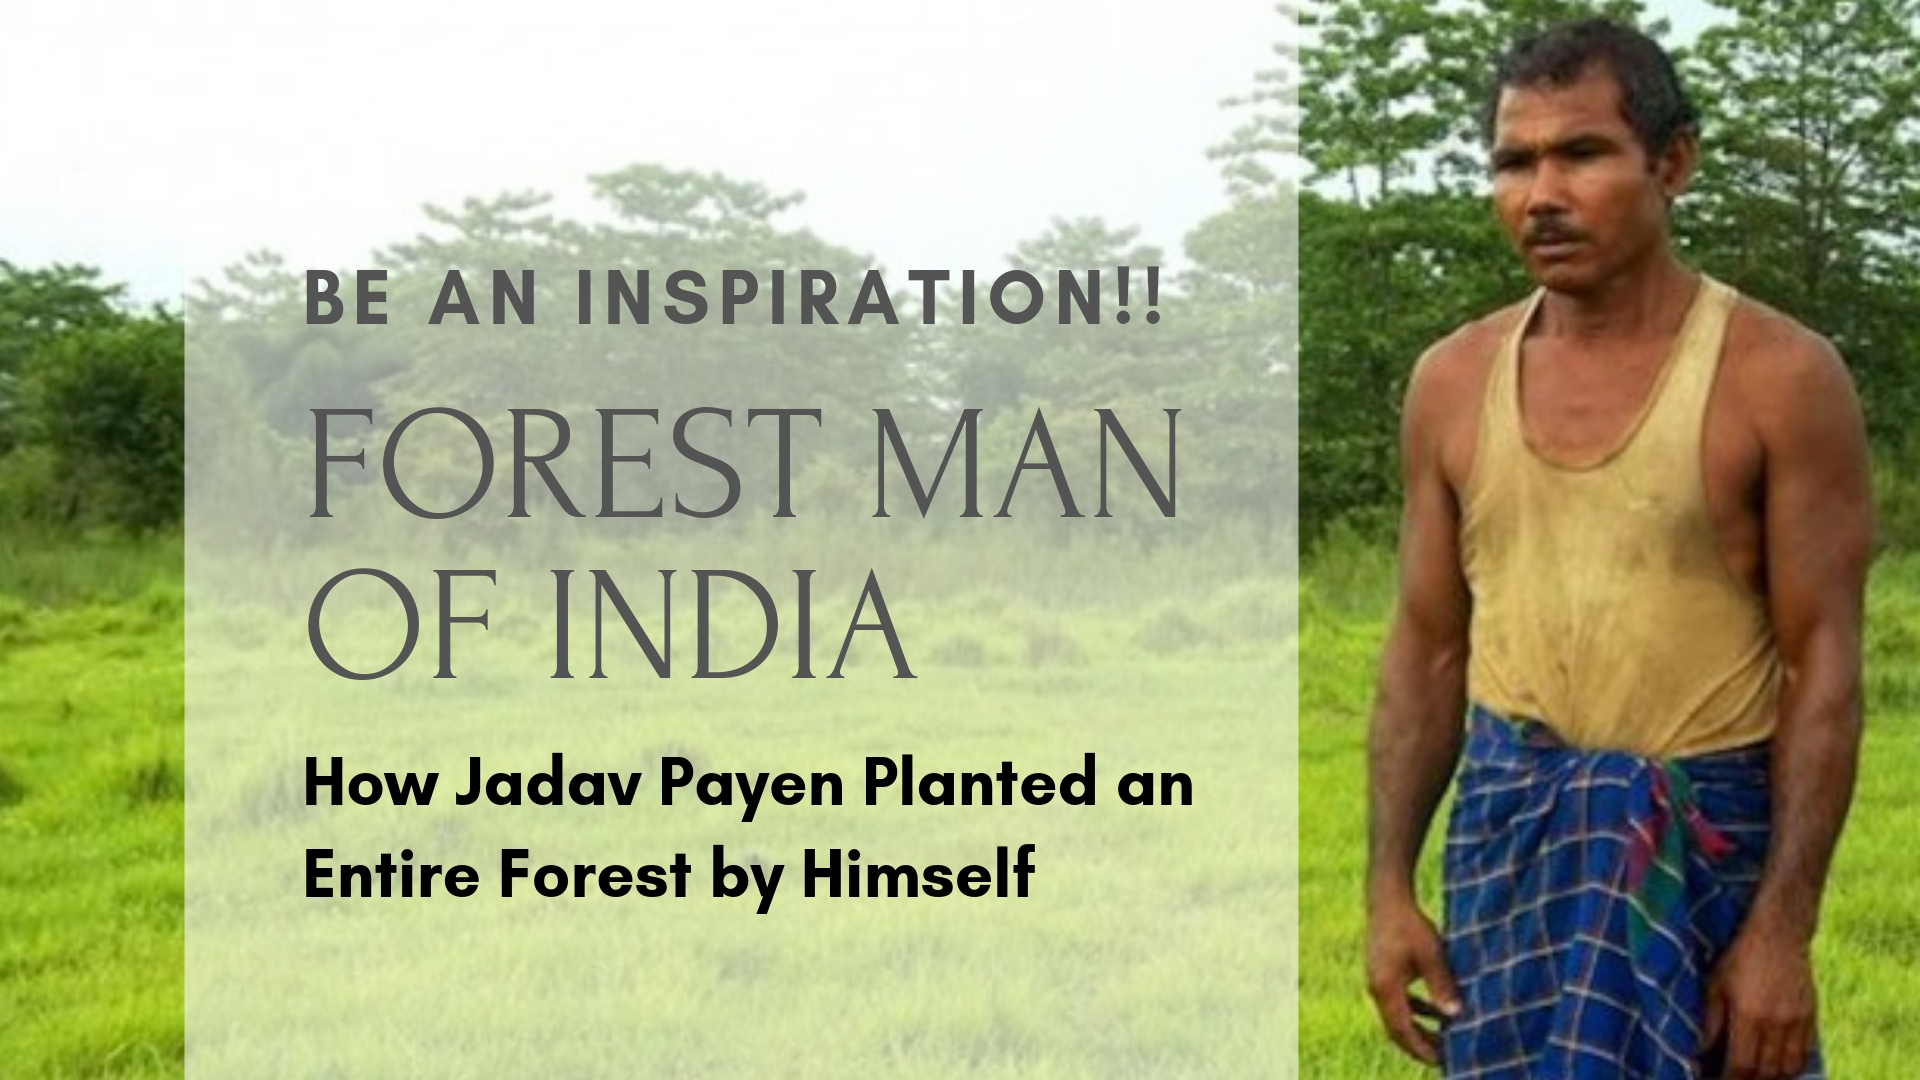 Be An Inspiration: Jadav Payeng Planted an Entire Forest by Himself